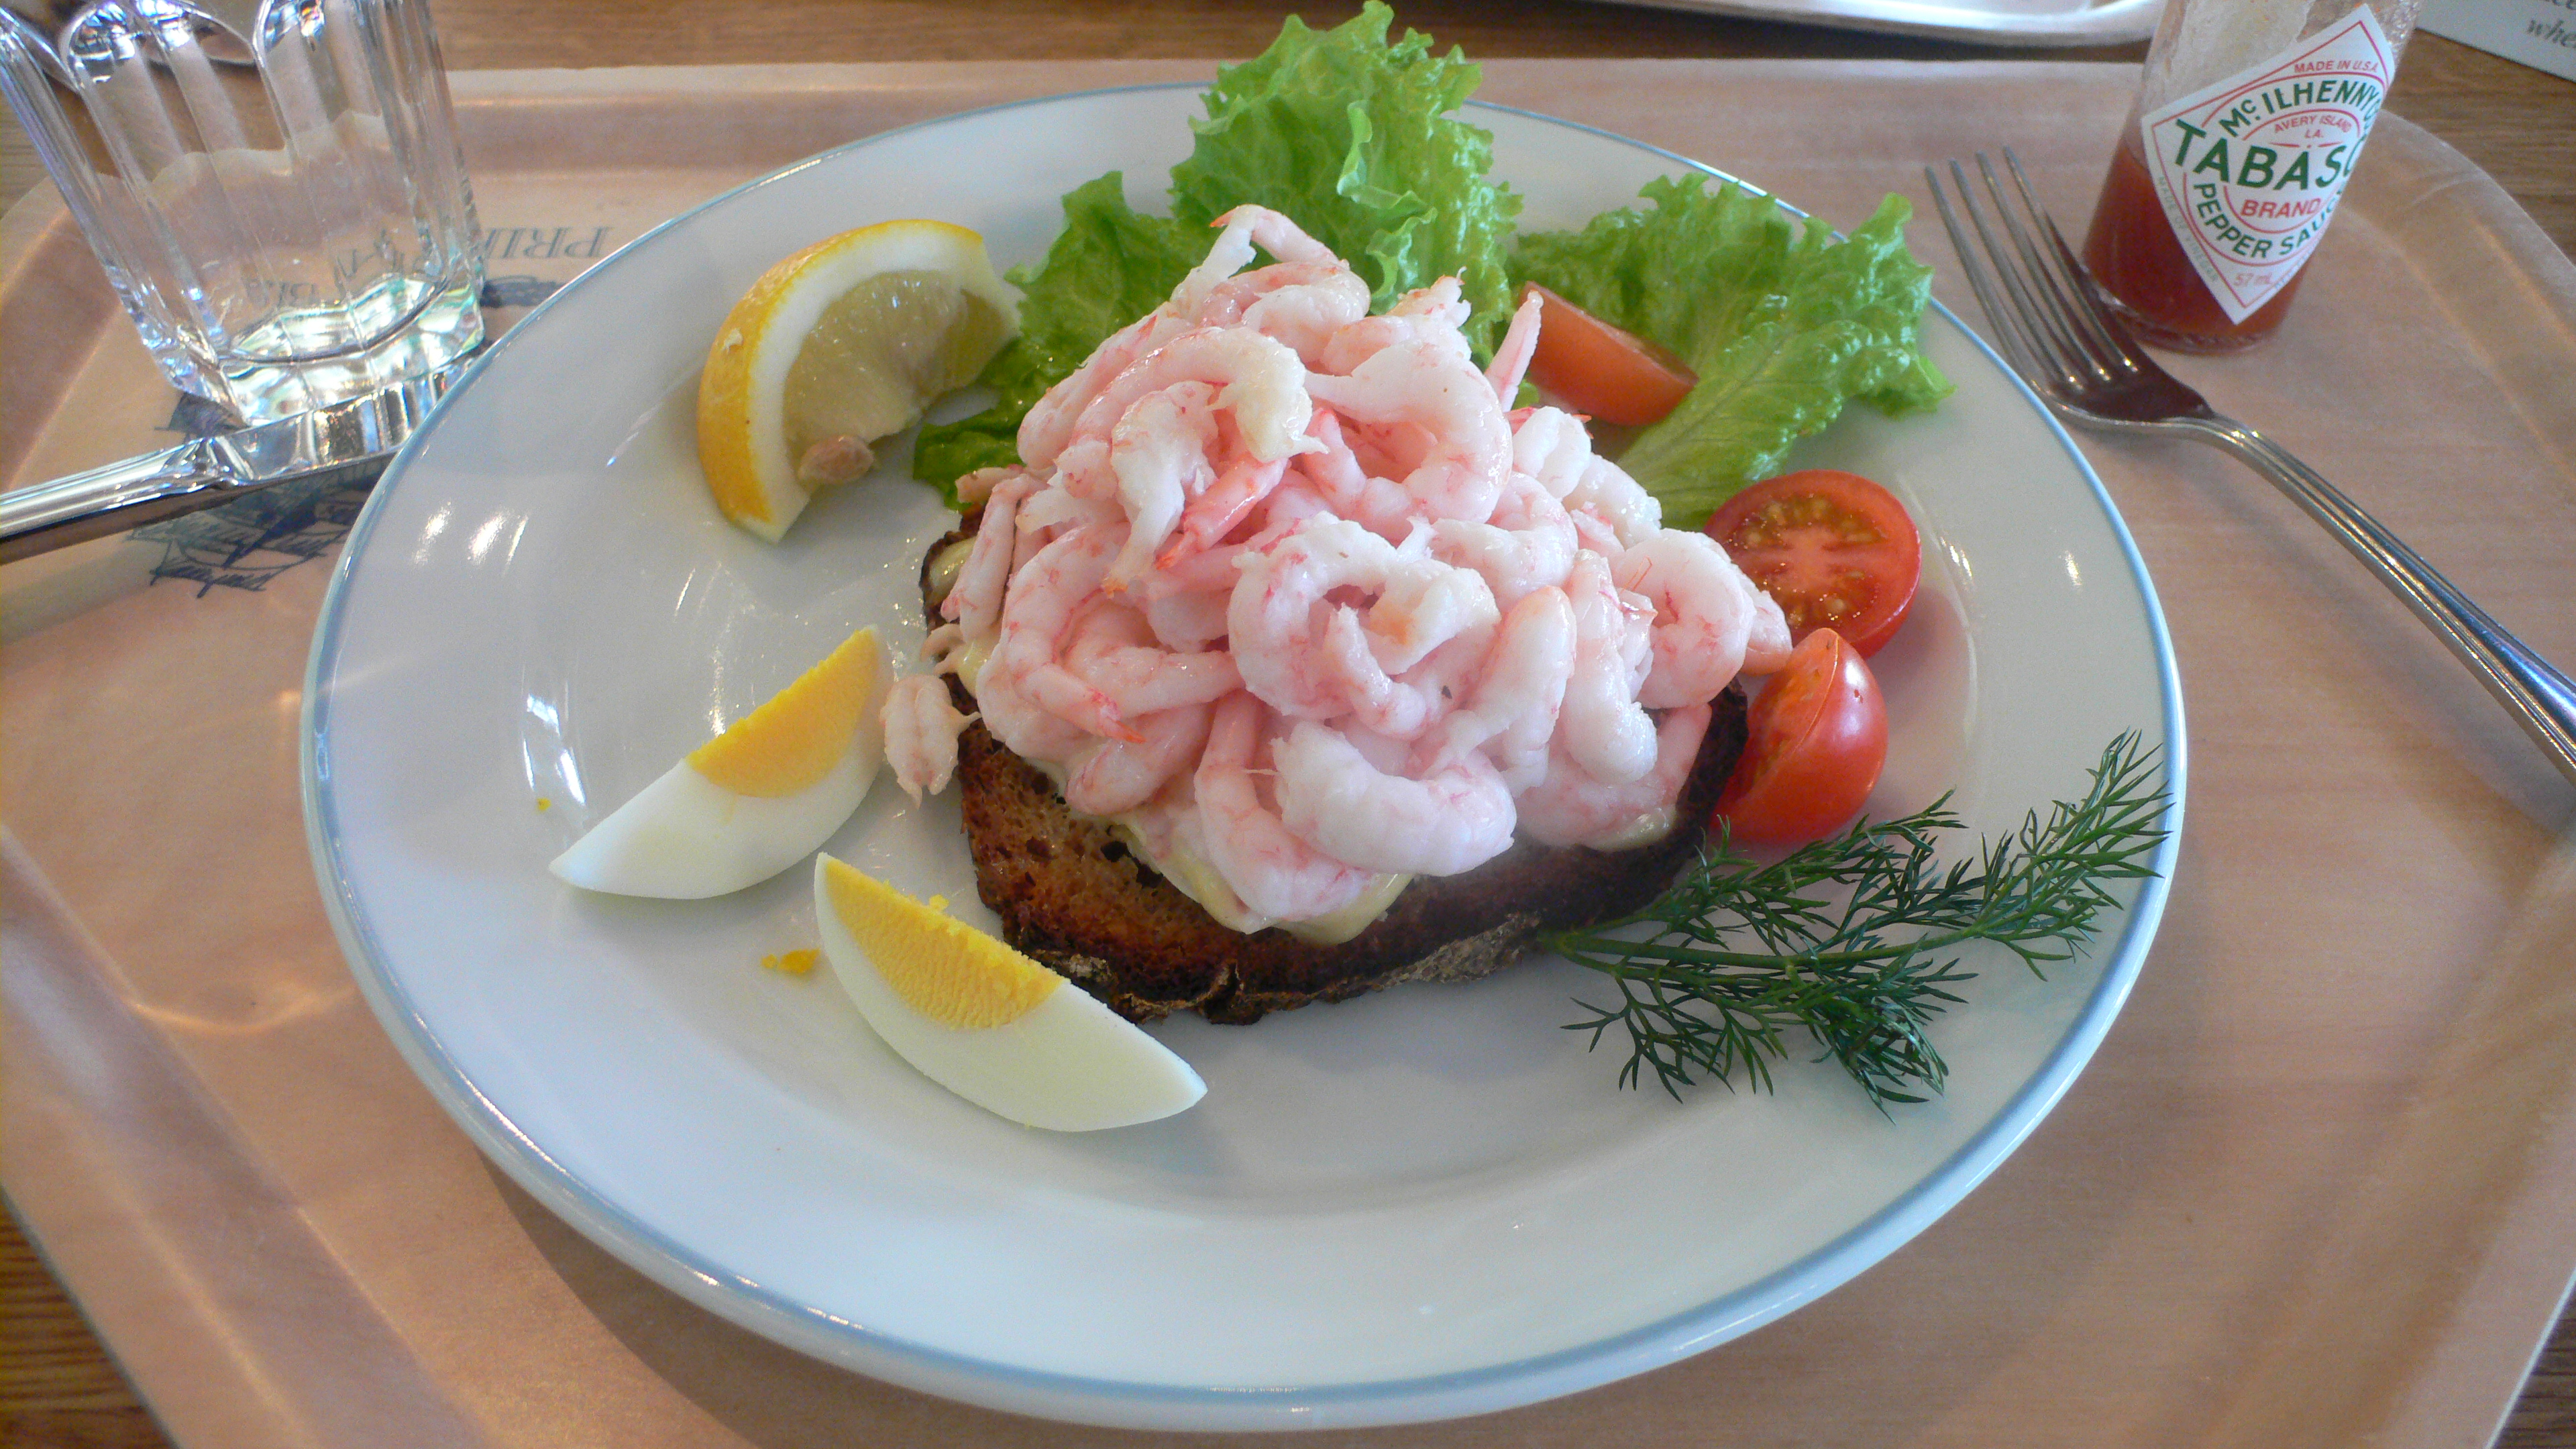 File:Open Faced Shrimp Sandwich.jpg - Wikimedia Commons